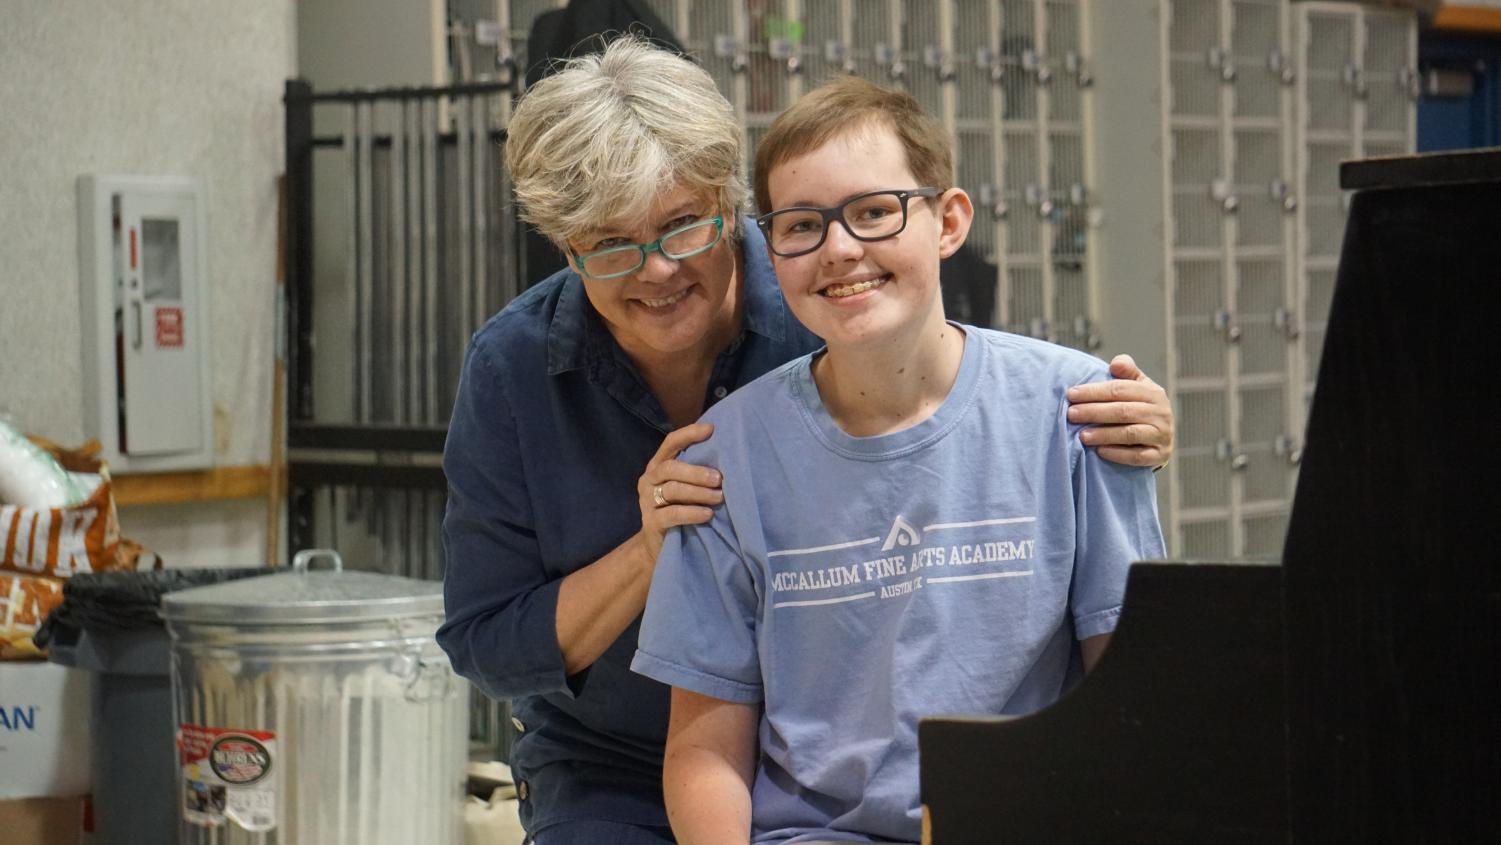 "MORE THAN A TEACHER: The dynamic duo of band director Carol Nelson and senior Townes Hobratschk smile together in the band hall. The two have been through a lot over his four years at McCallum, and as Townes finishes his senior year, it is evident that they have shaped each other's lives in many ways. When Townes was diagnosed with brain cancer. Nelson brought a tuba to the hospital so he could stay connected with the band, and despite his diagnosis, she encouraged Townes to make the band's trip that summer to Carnegie Hall.  ""She believed in me, and because of that, I had one of the best experiences of my life,"